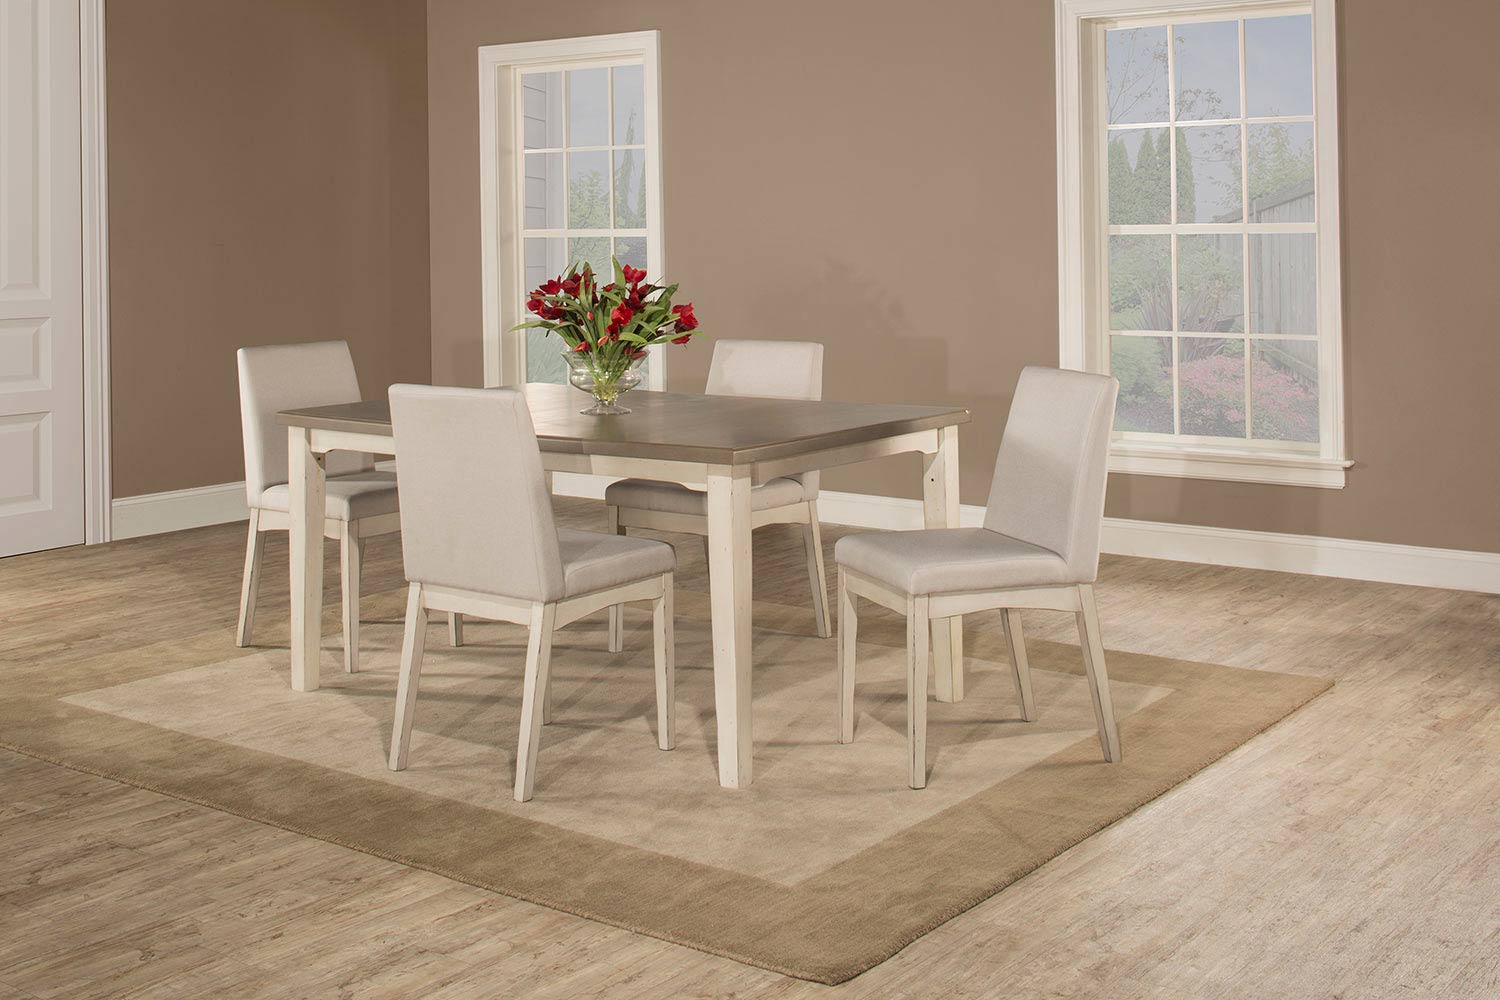 Hillsdale Clarion 5-Piece Rectangle Dining Set with Upholsted Chairs - White - Fog Fabric